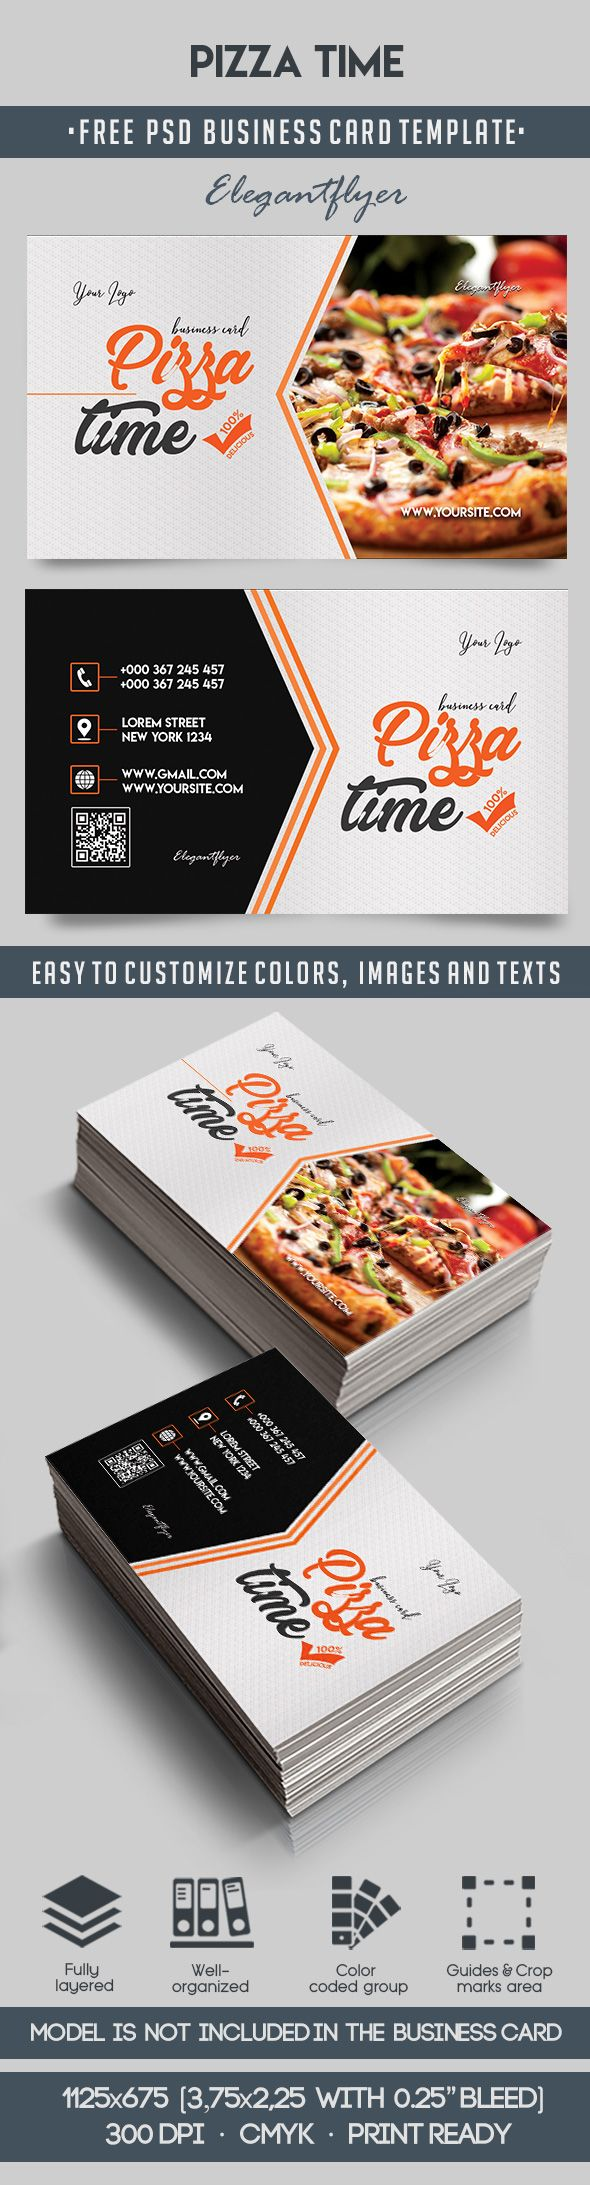 Pizza Time – Free Business Card Templates PSD